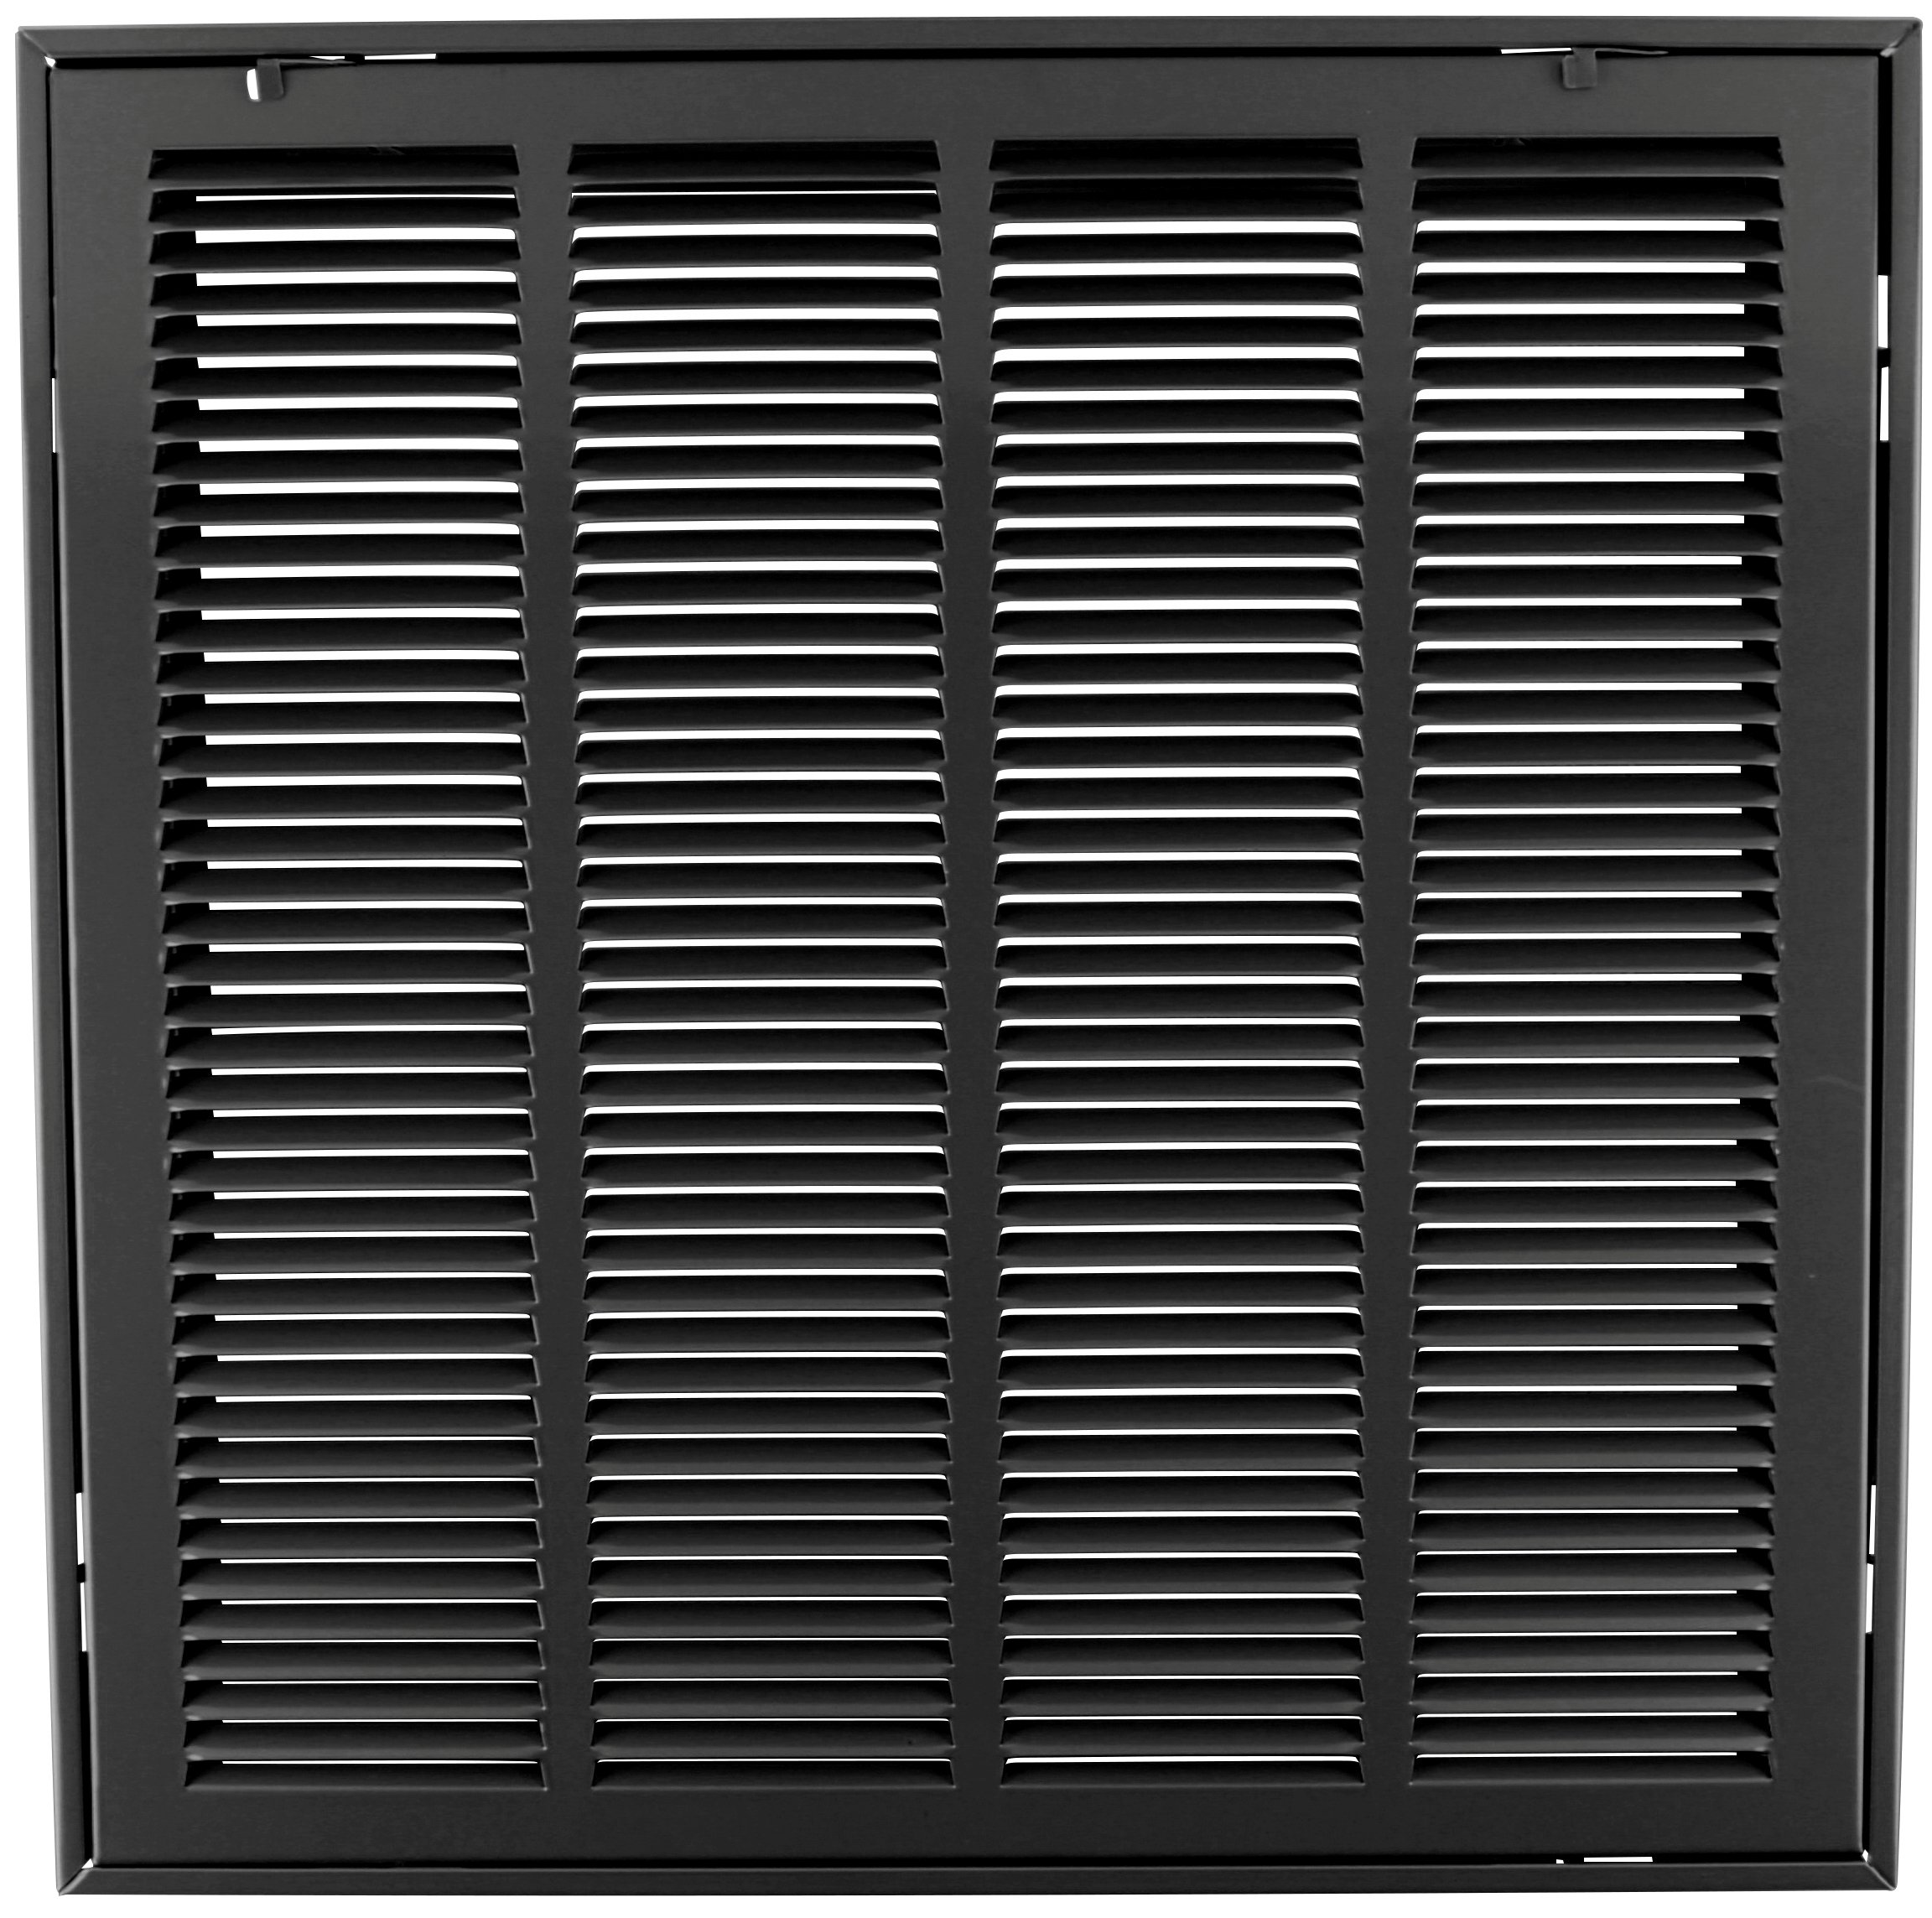 20'' X 20 Steel Return Air Filter Grille for 1'' Filter - Removable Face/Door - HVAC DUCT COVER - Flat Stamped Face - Black [Outer Dimensions: 22.5''w X 22.5''h] by HVAC Premium (Image #1)